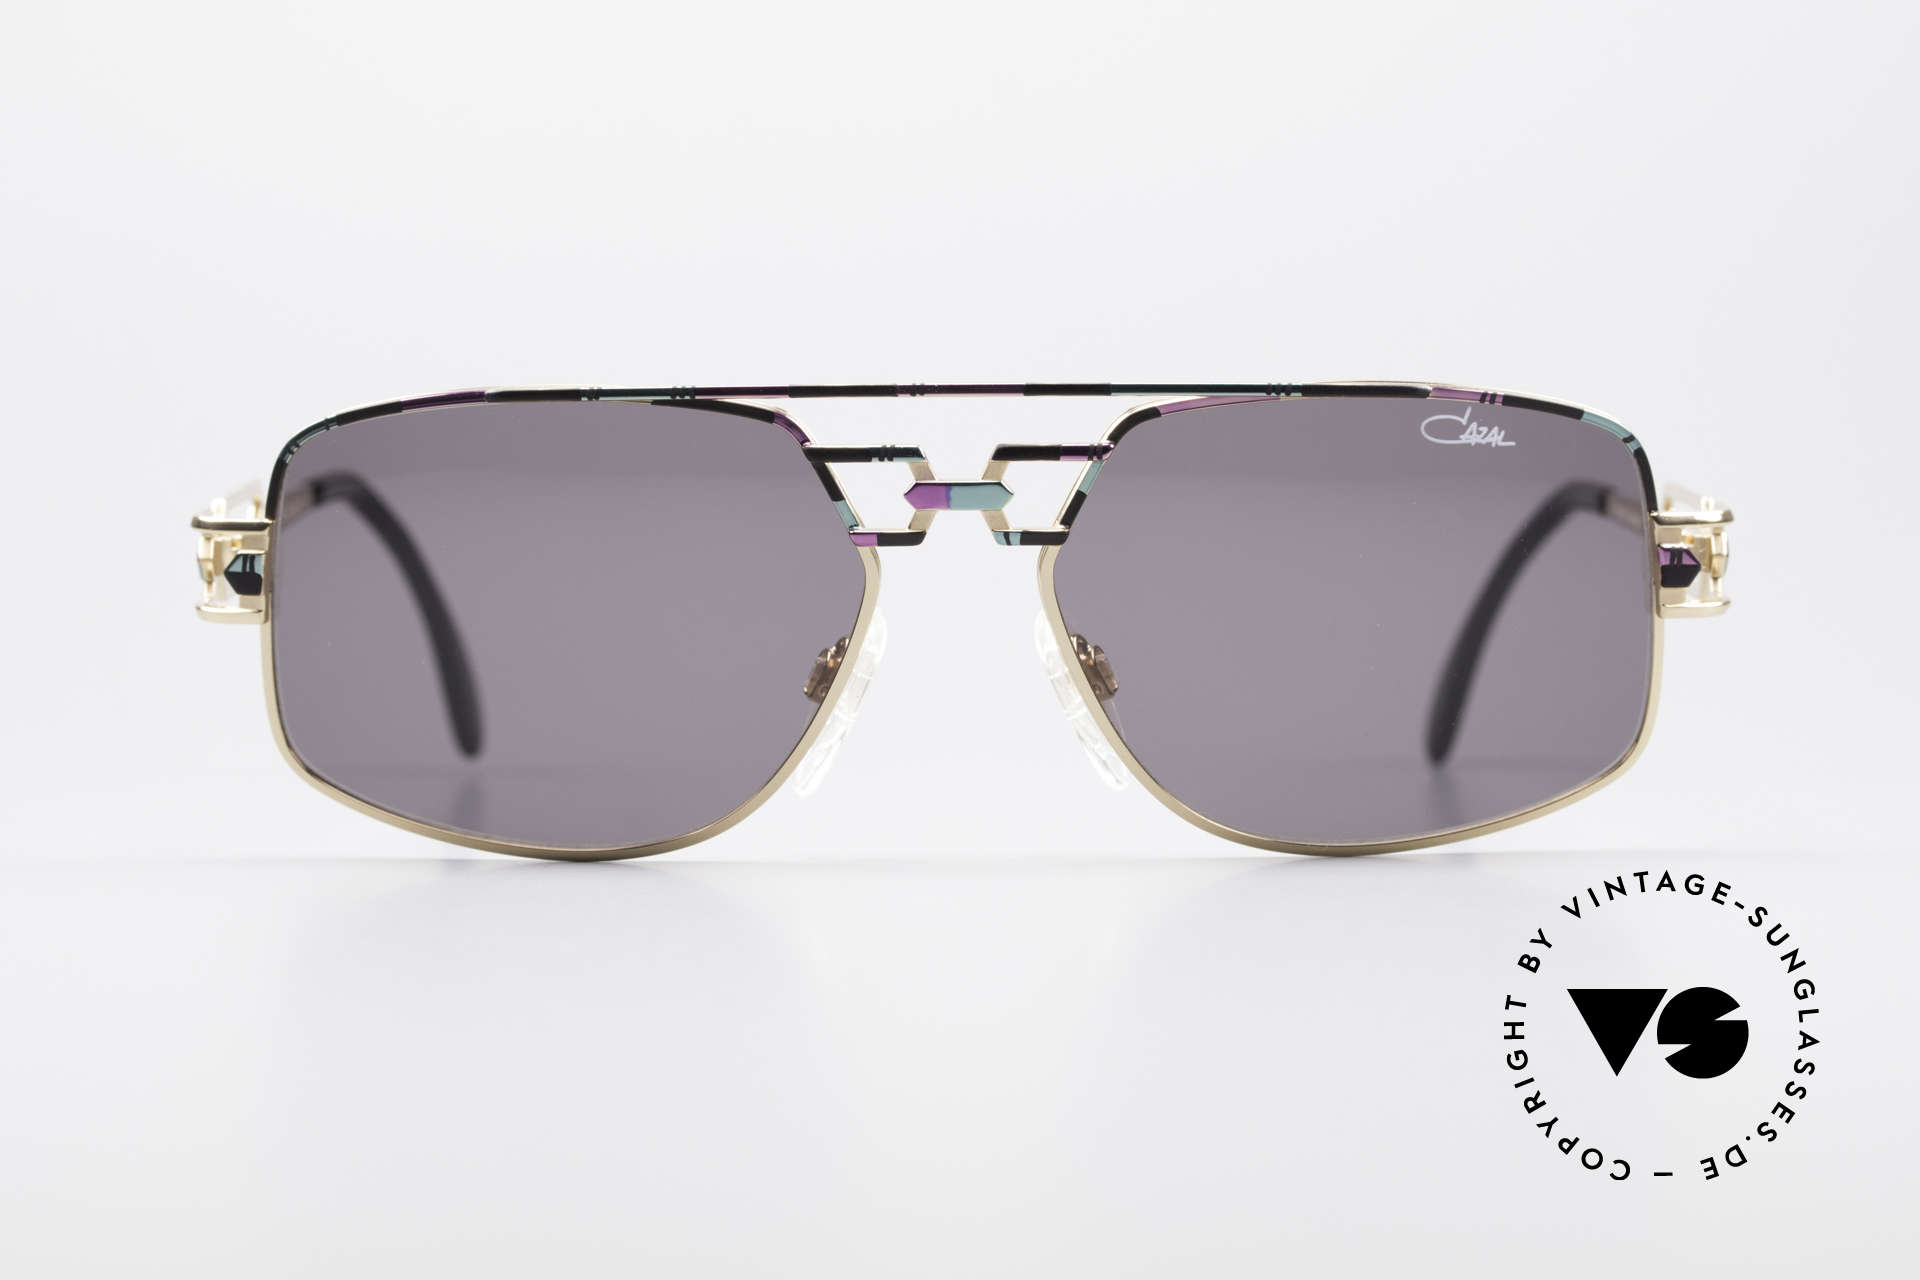 Cazal 972 No Retro Shades True Vintage, high-end quality 'made in GERMANY' (crafted in Passau), Made for Men and Women